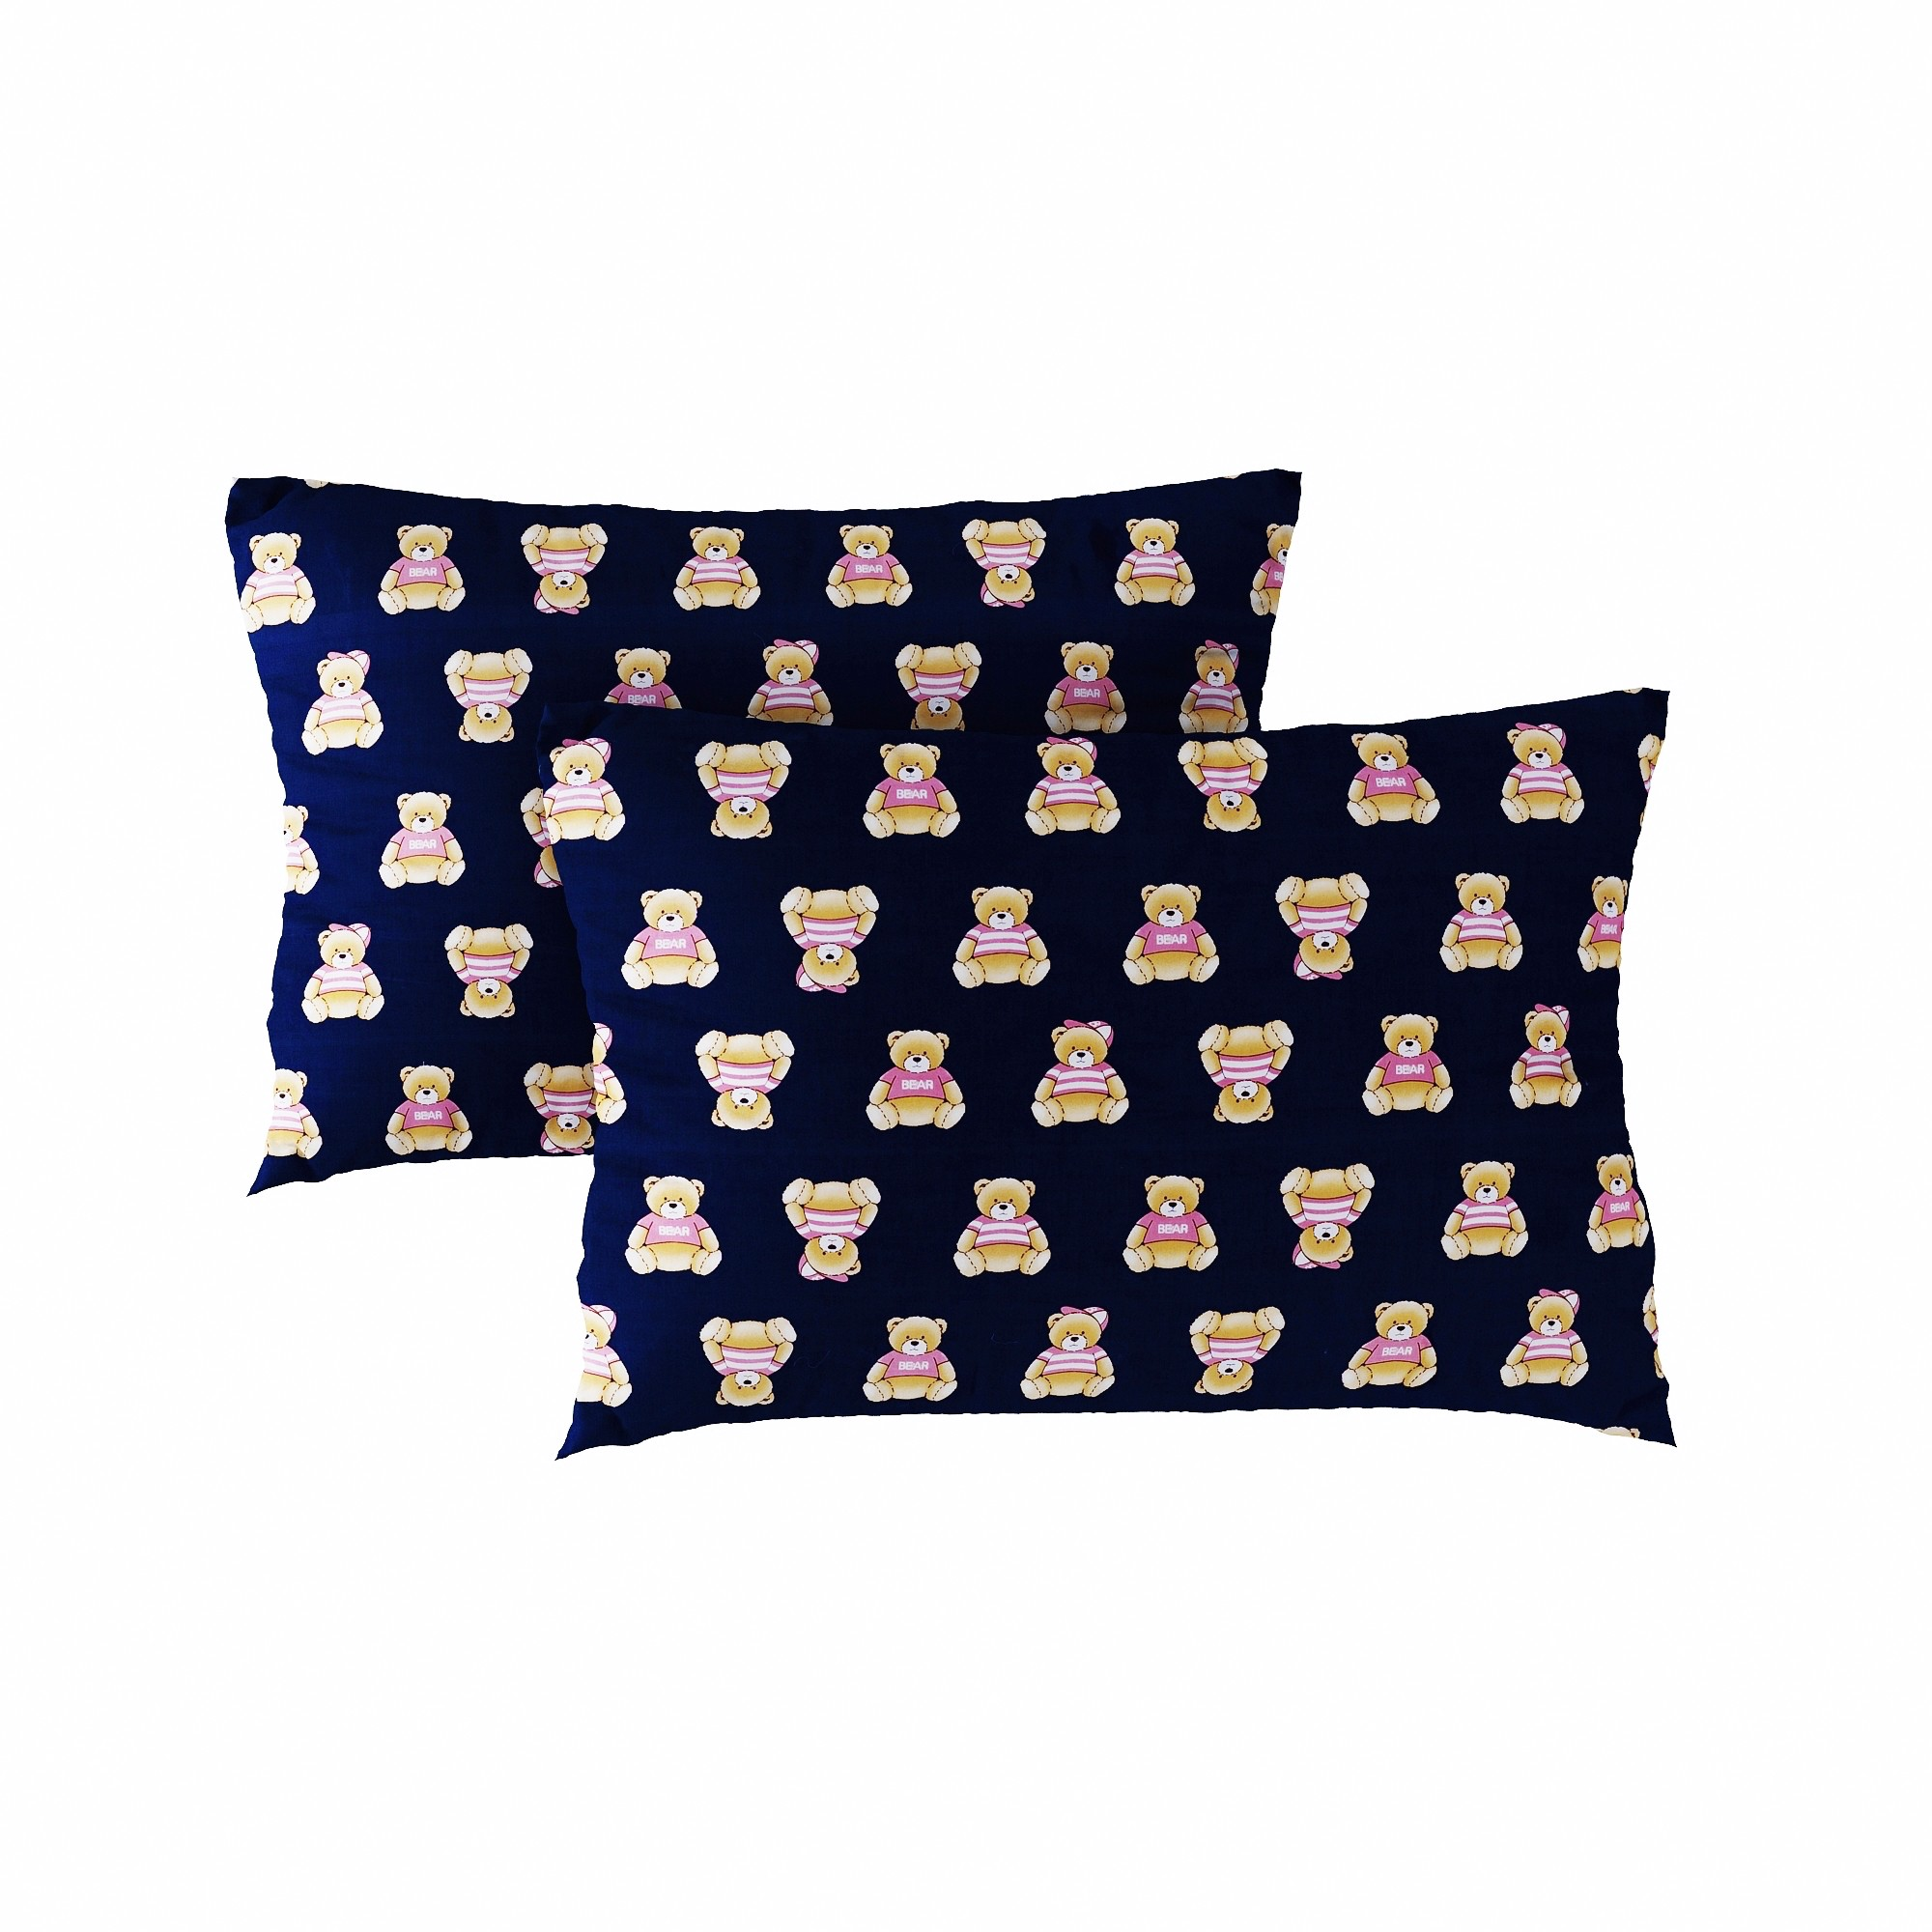 Pillow case 146 Teddy bears